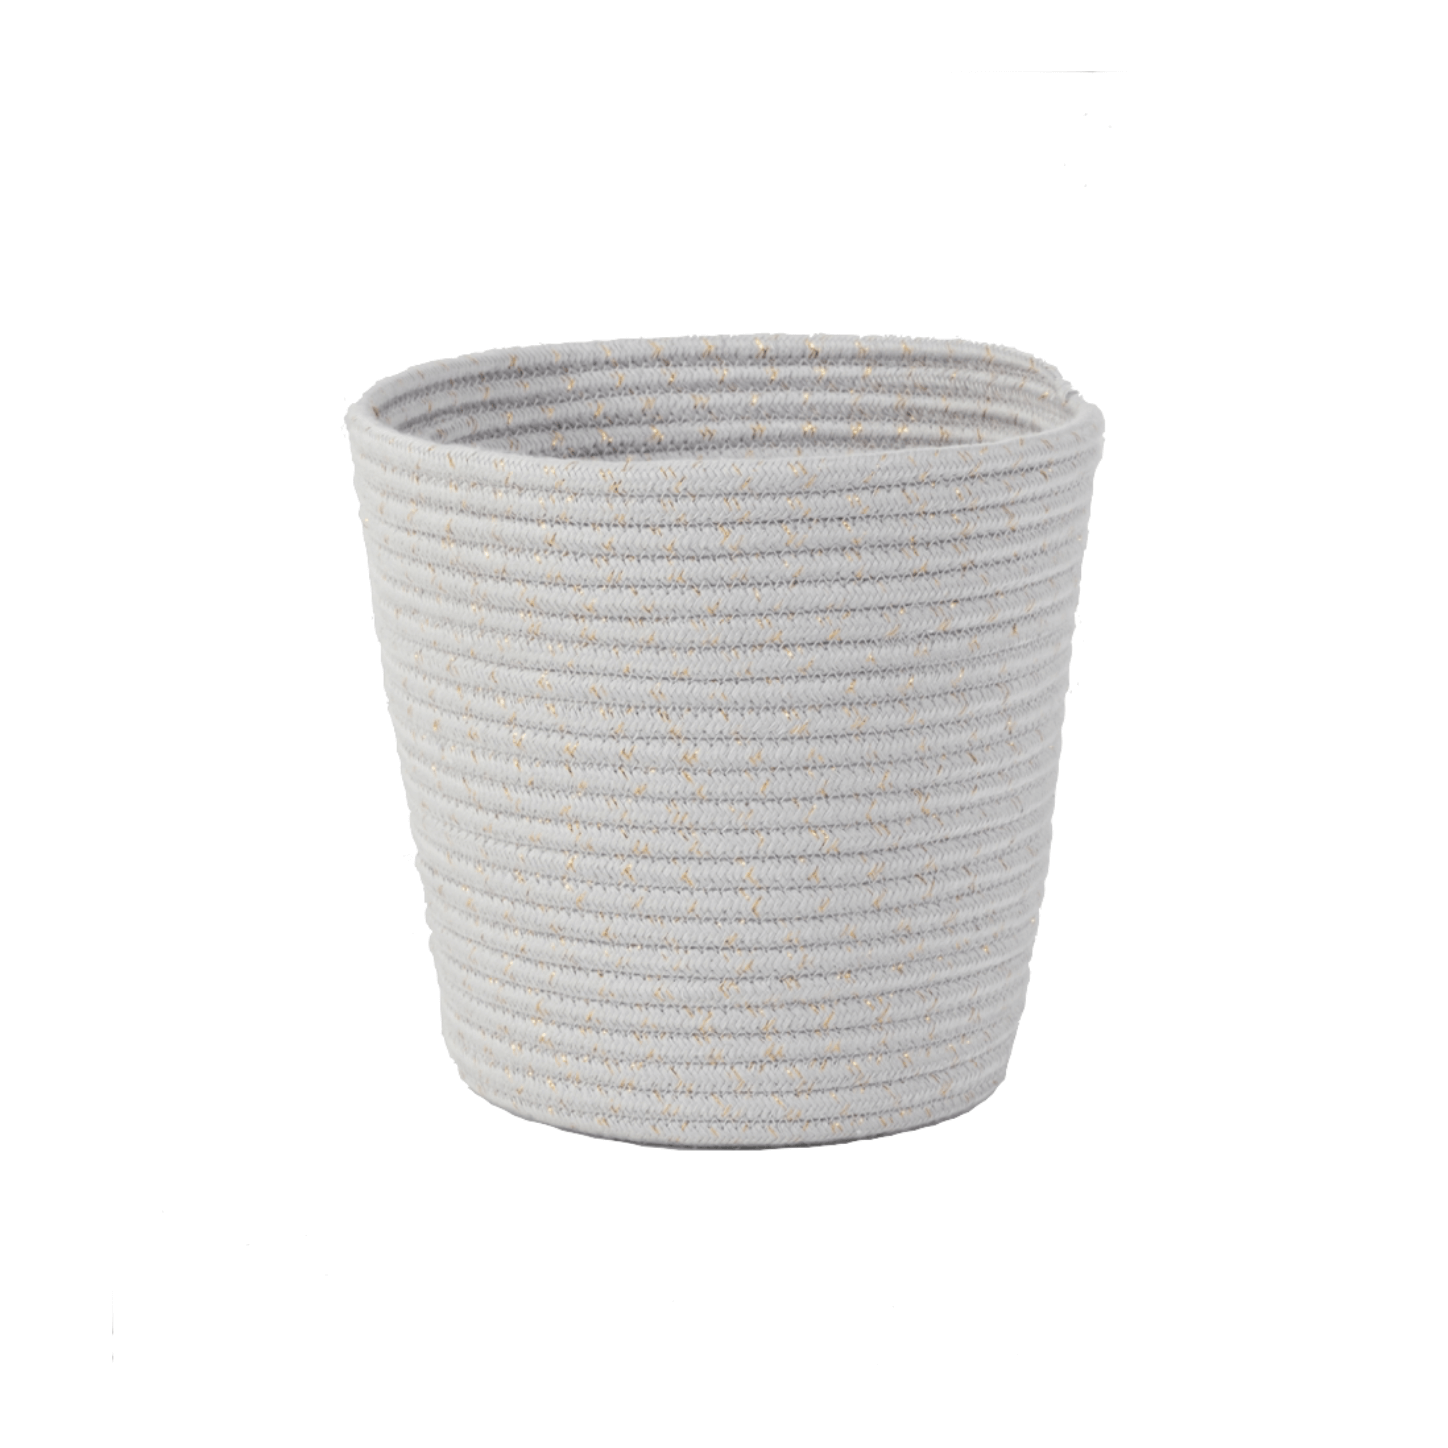 Casey Woven Planter Cover | Grey